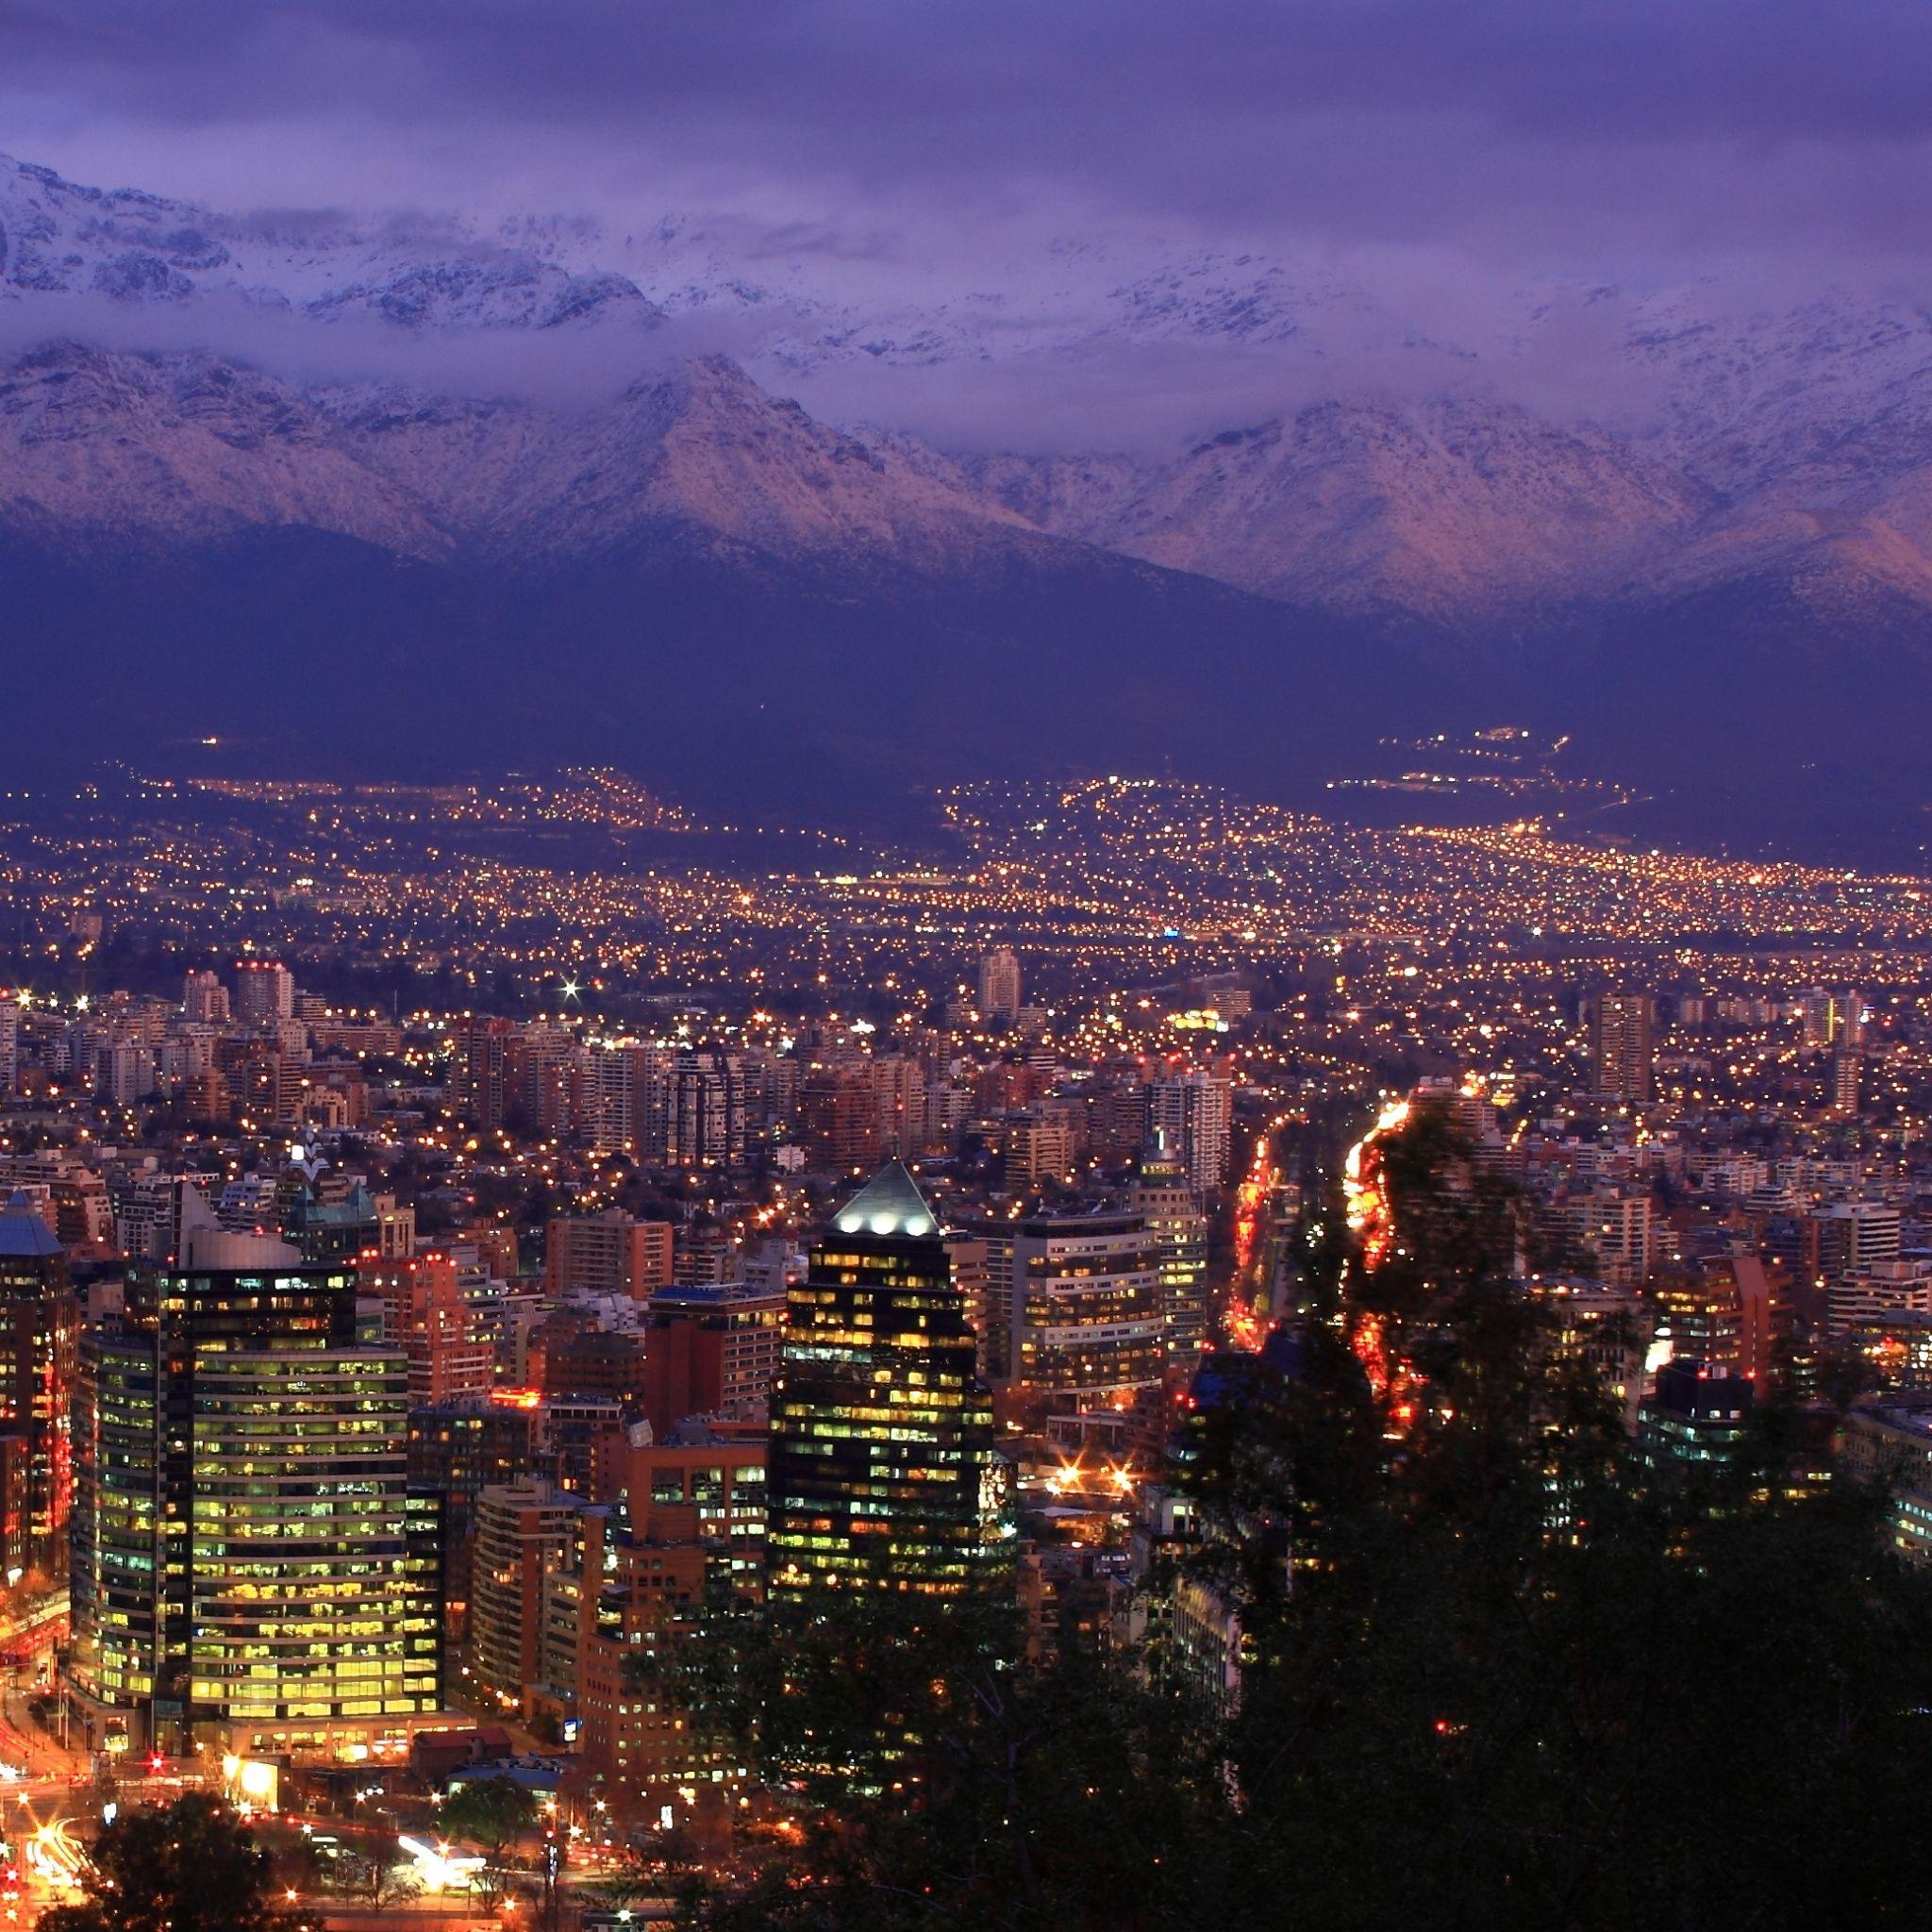 Santiago Chile iPad Air Wallpaper Download | iPhone Wallpapers ...